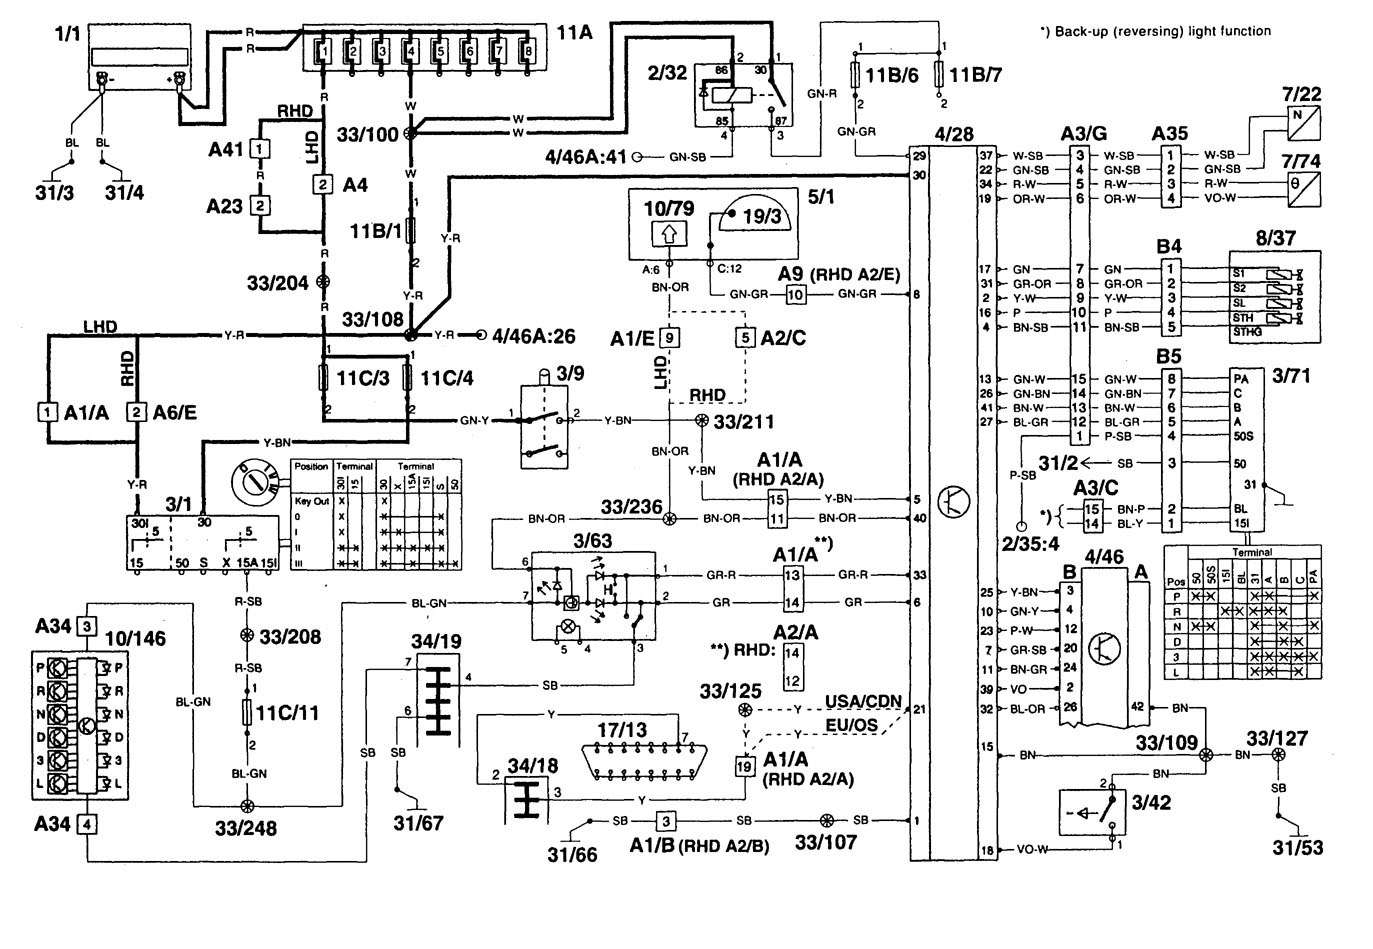 Volvo V90 (1997 - 1998) - wiring diagrams - transmission controls -  Carknowledge.infoCarknowledge.info